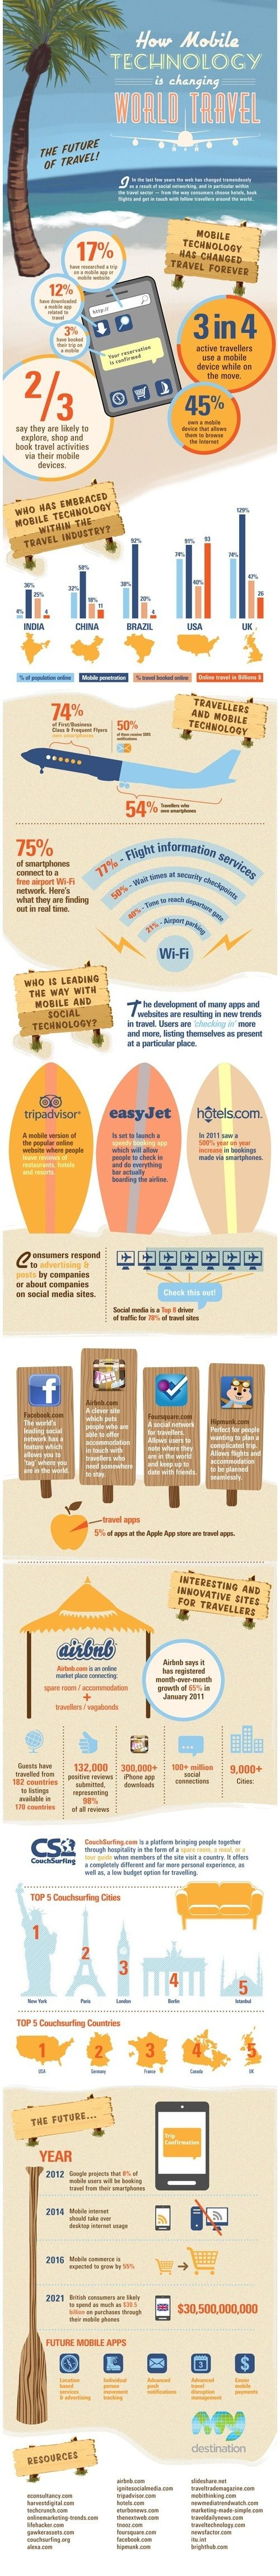 How mobile is changing the travel industry #infographic